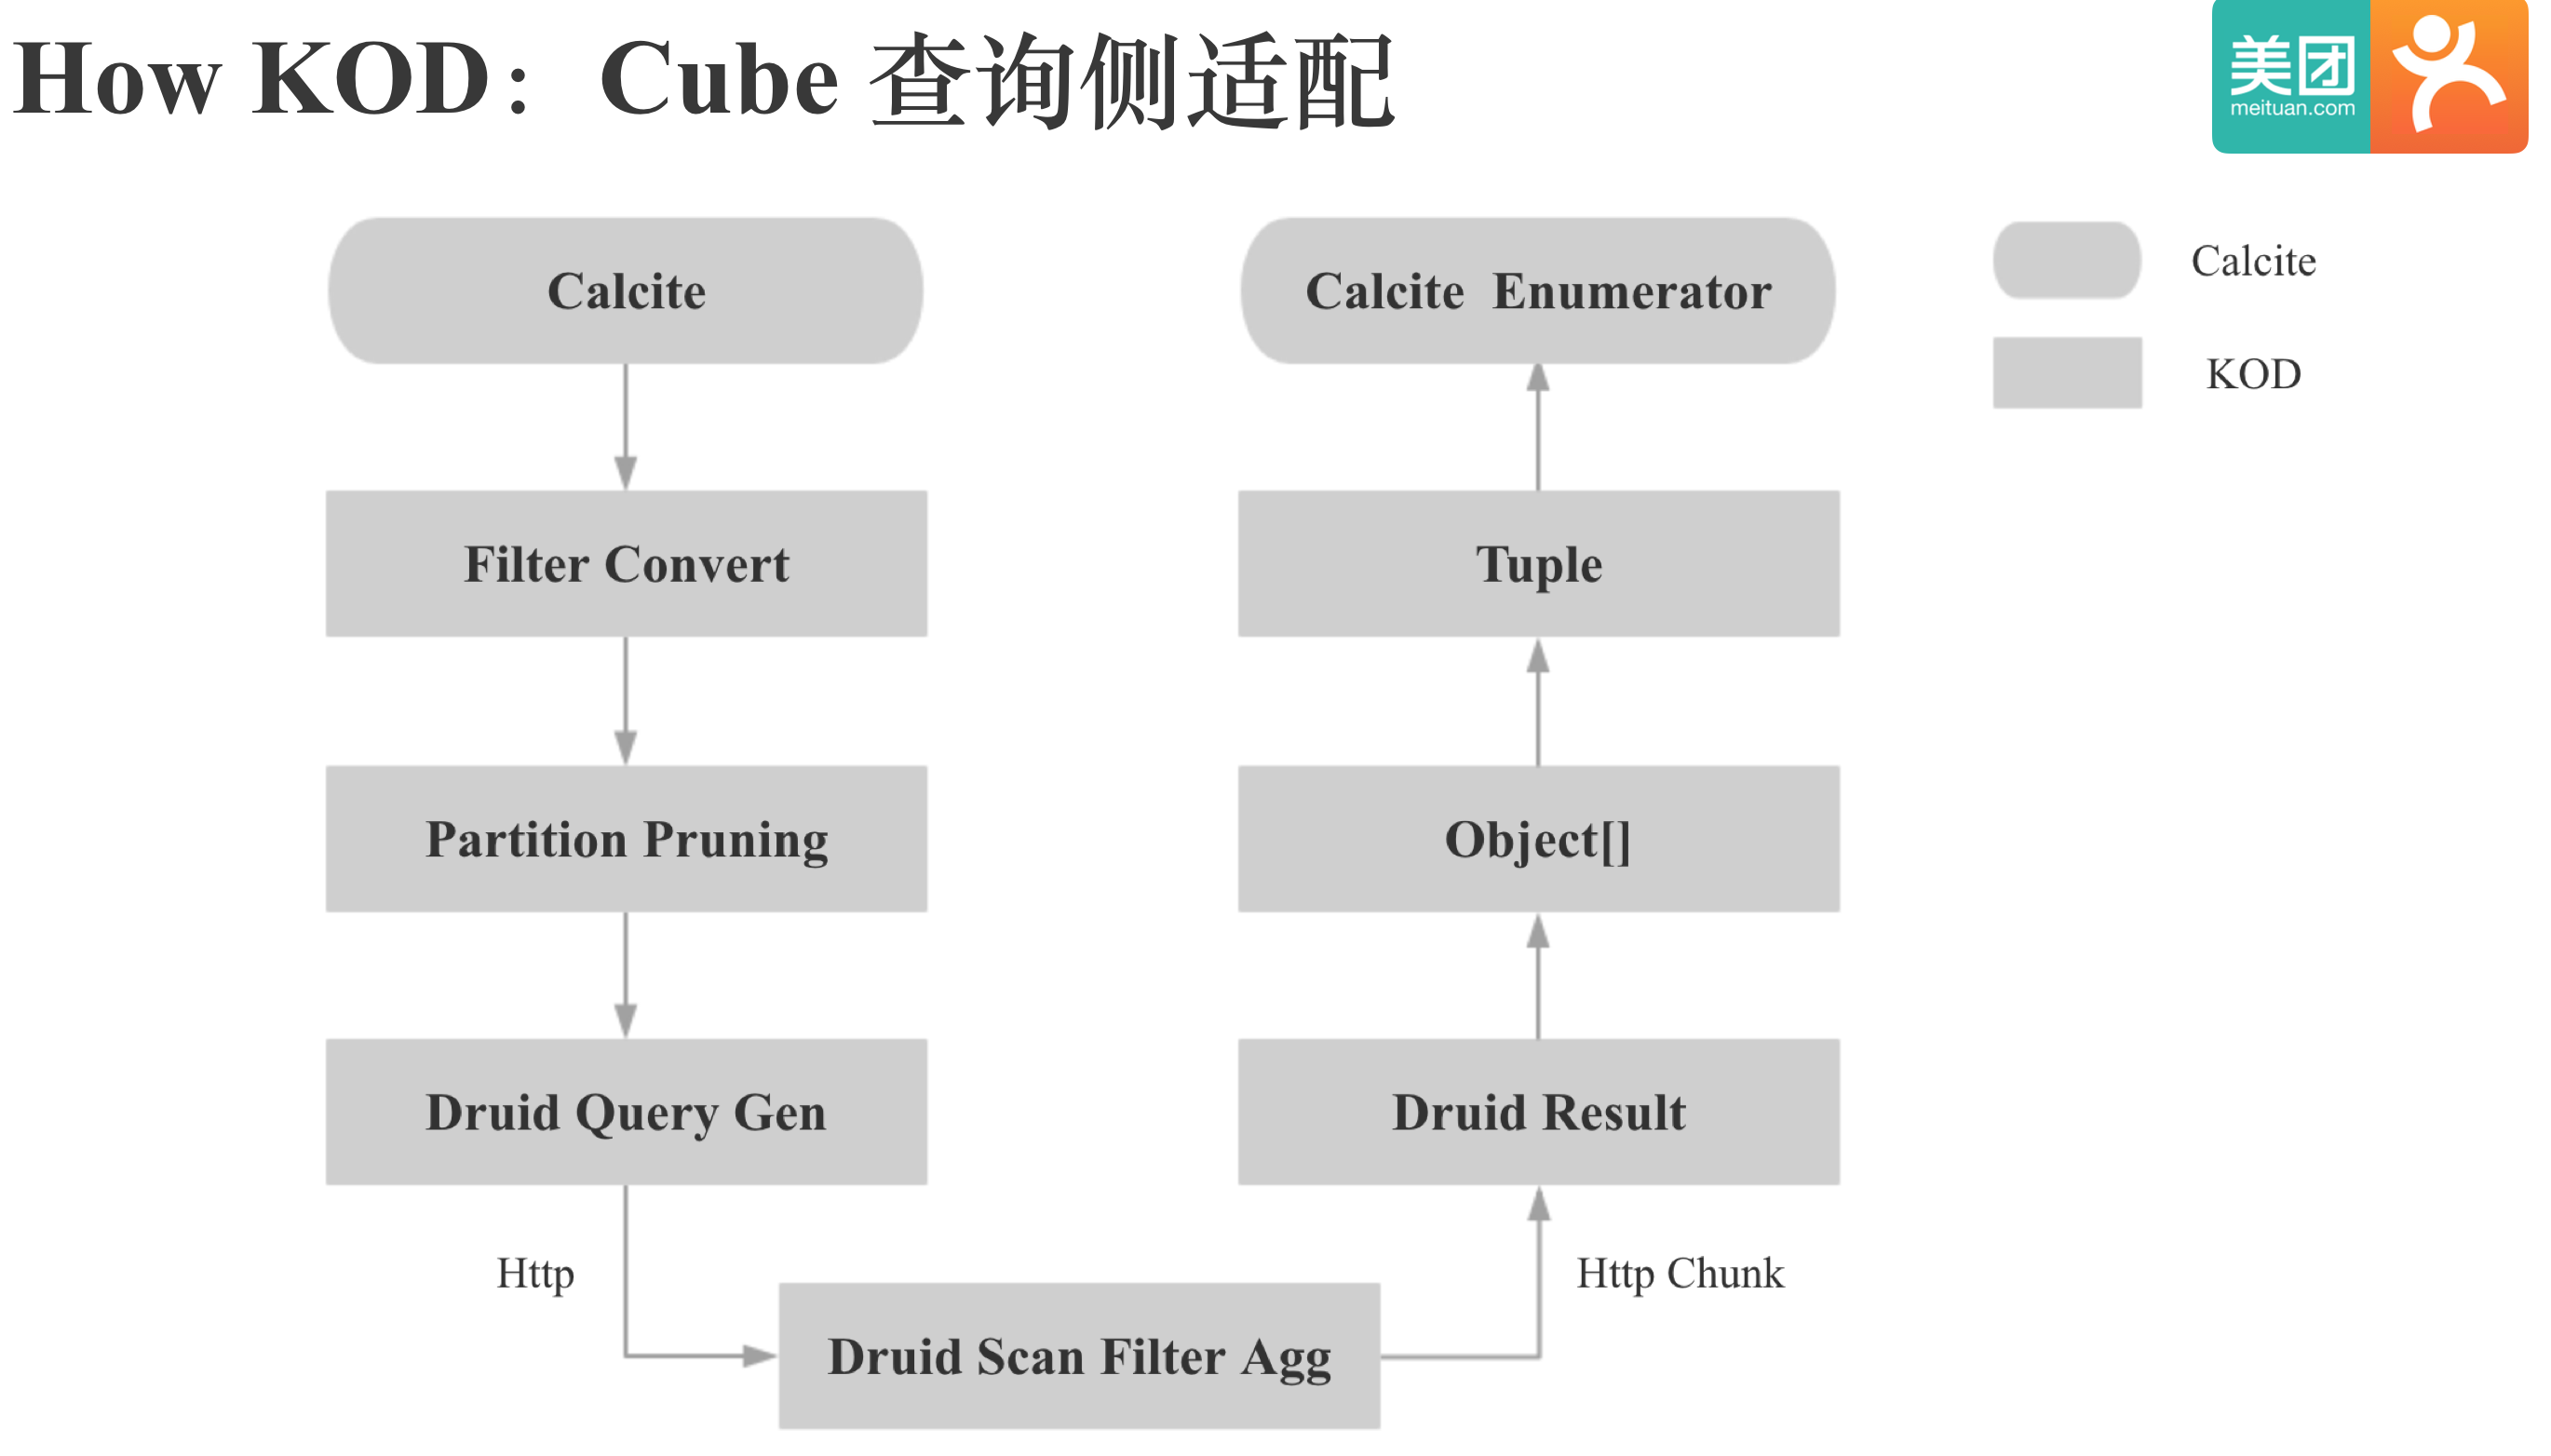 How KOD:Cube 查询侧适配